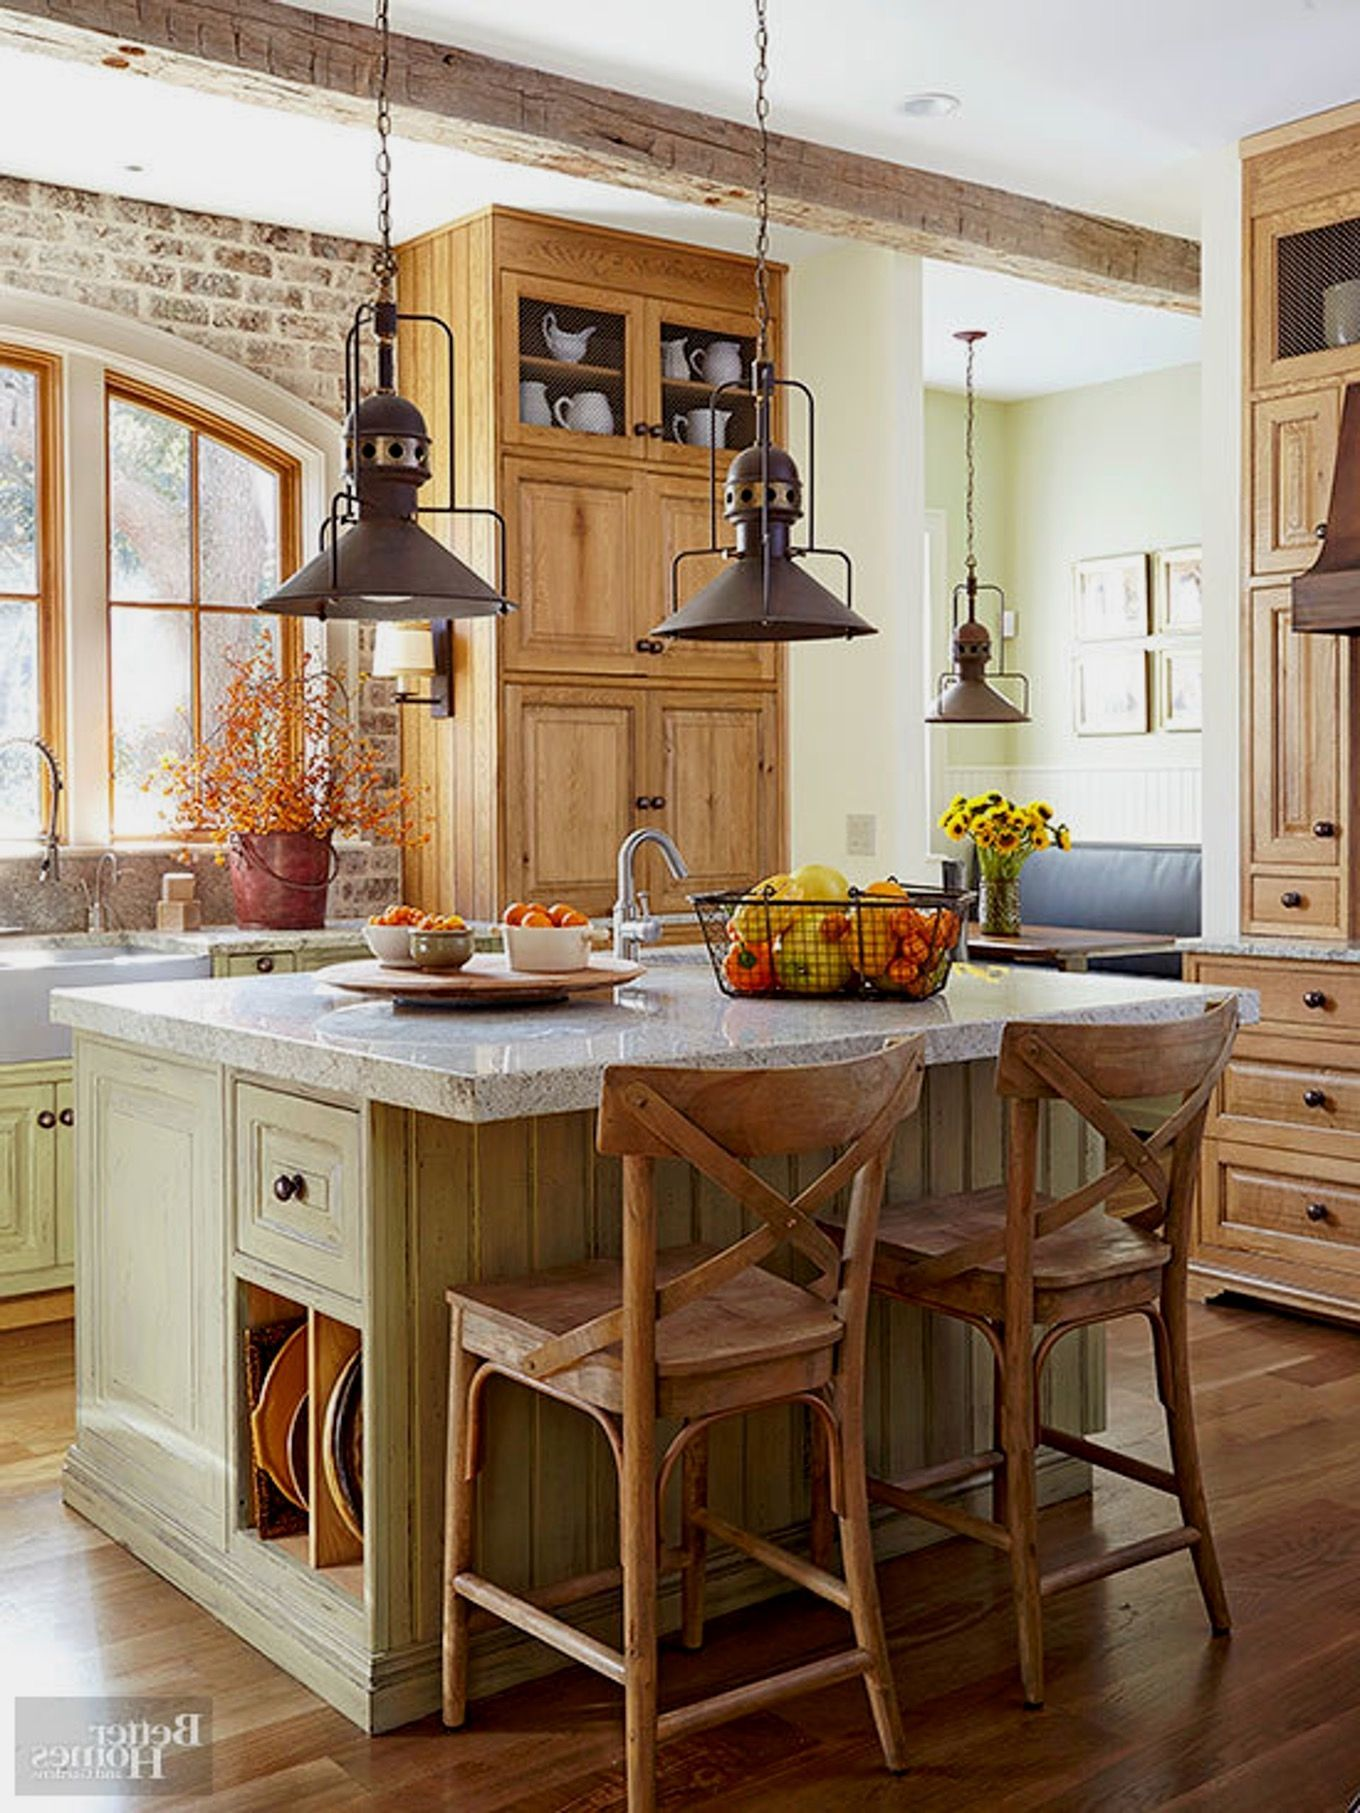 Here You Can Find The Perfect Way To Light Up Your Kitchen With These  Lighting Ideas!   Www.lightingstores.eu   Visit Our Blog For More  Inspirations About: ...